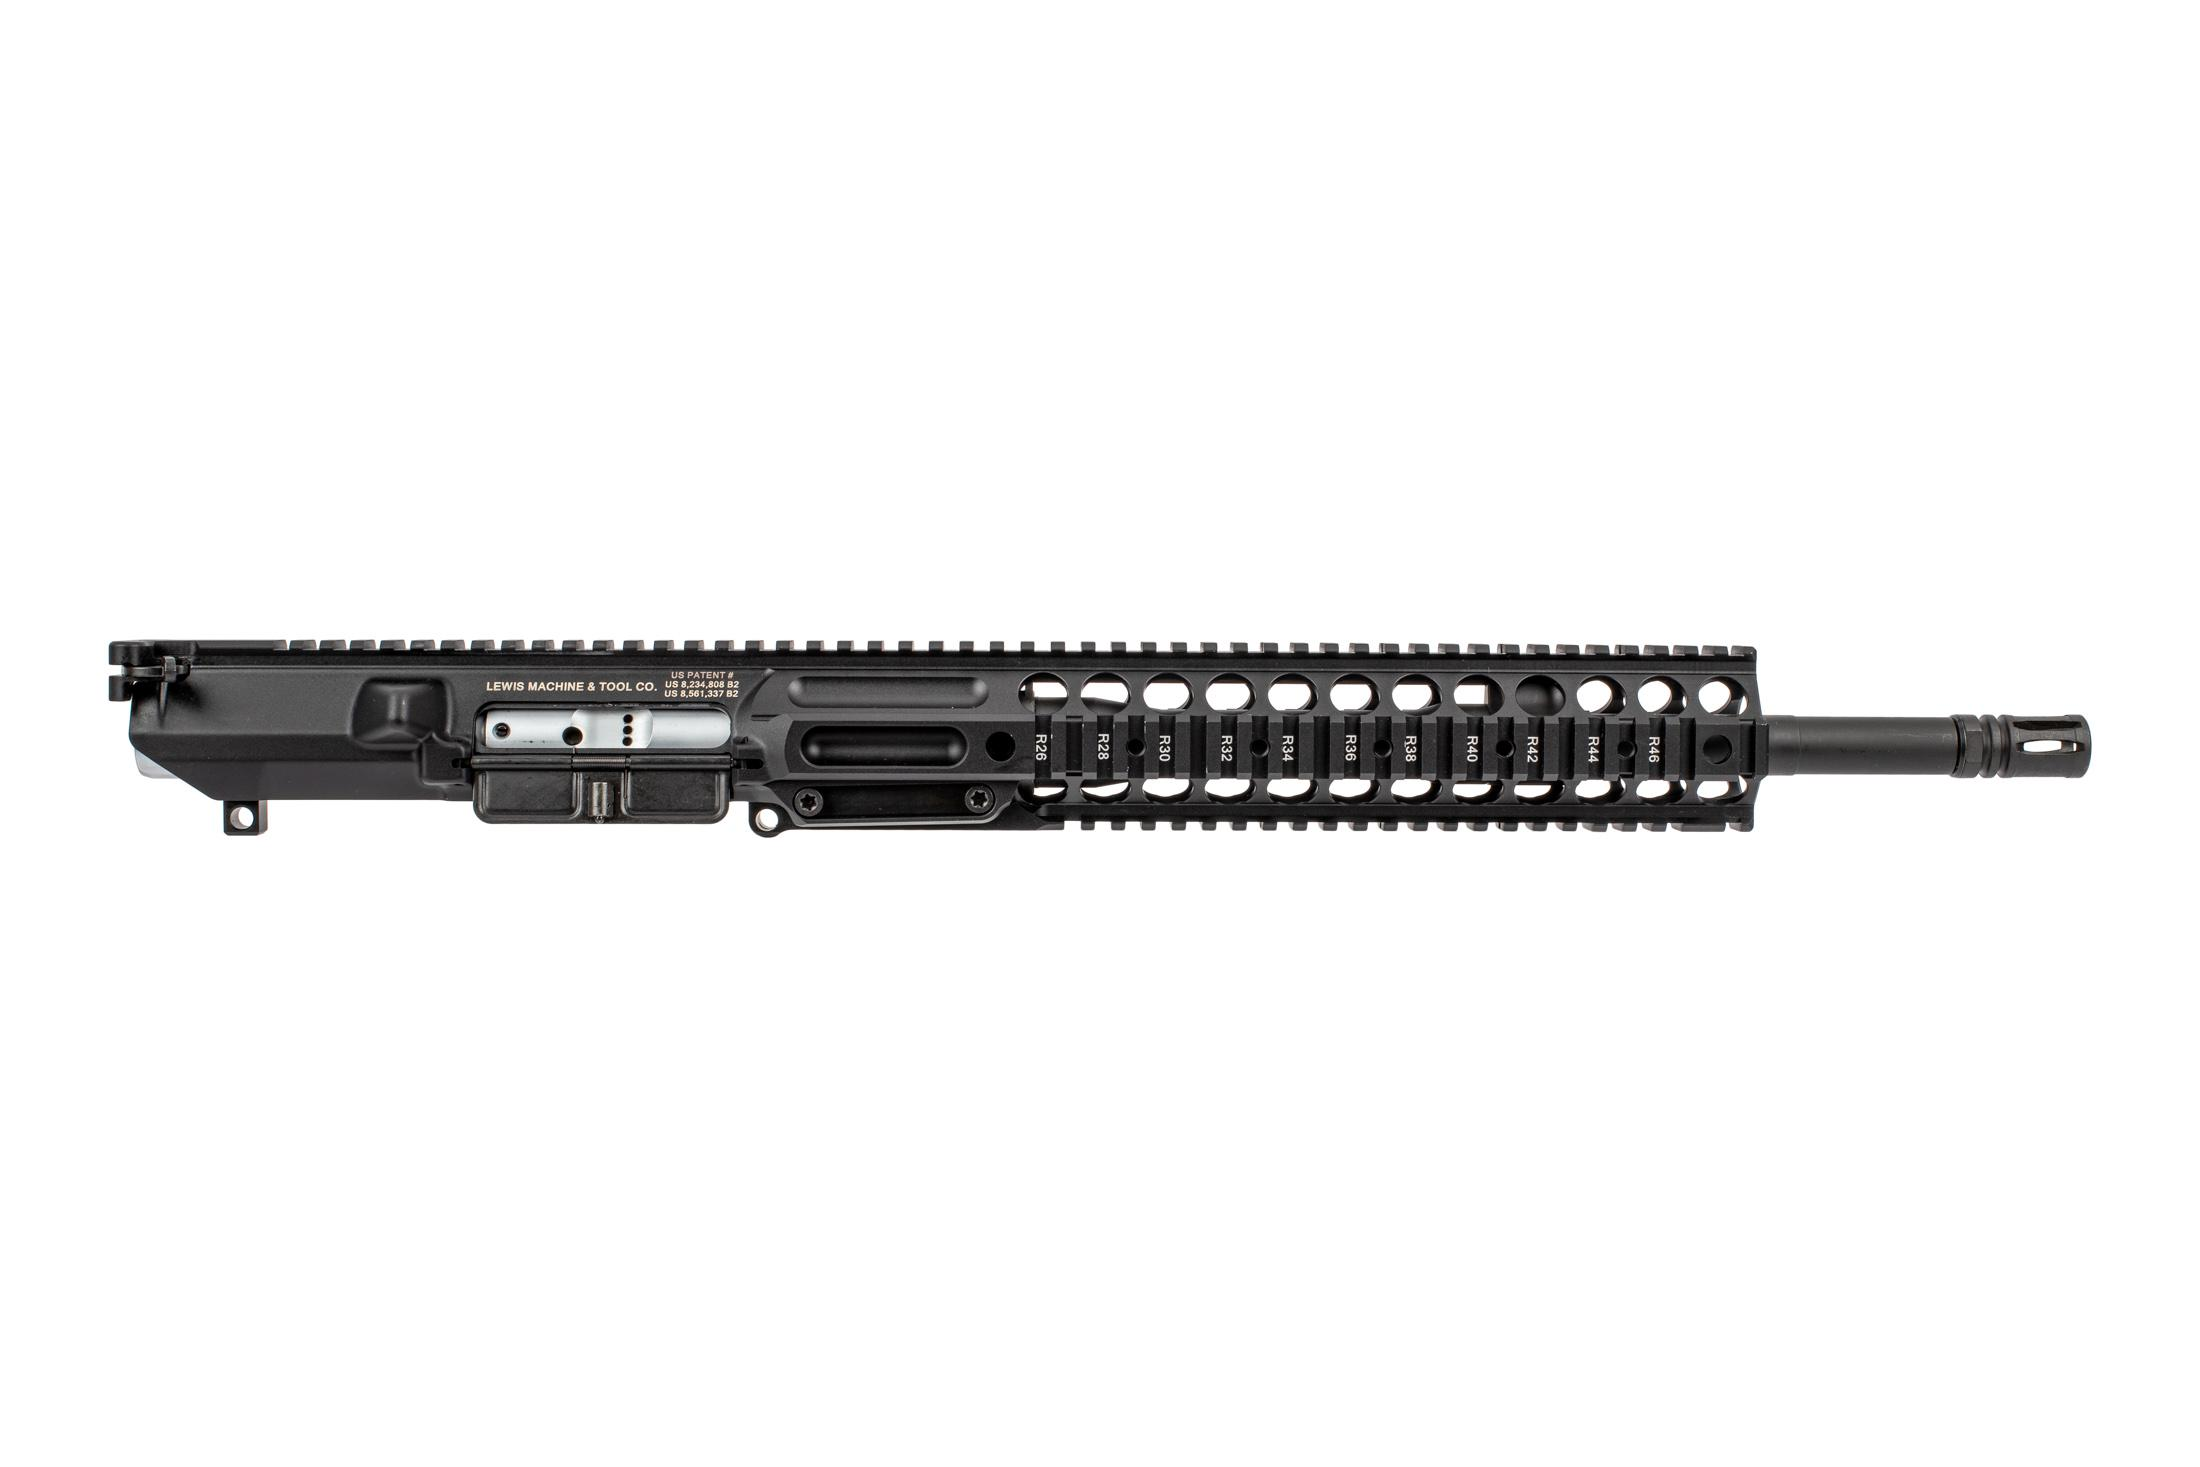 Lewis Machine & Tool CQBMWS AR10 complete upper receiver features a quick change barrel system